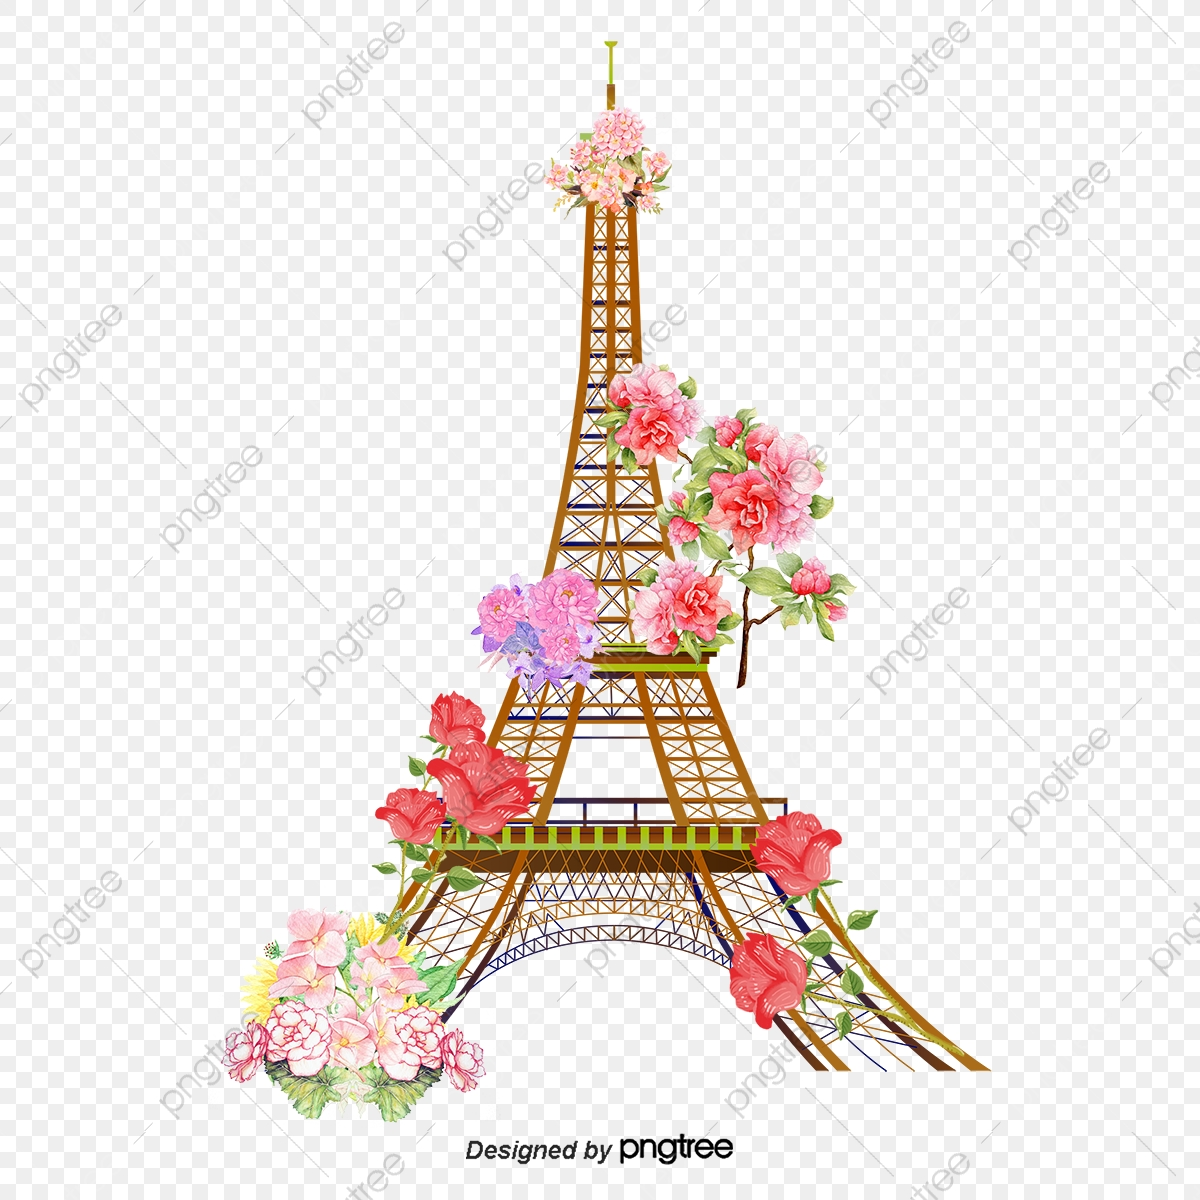 vector eiffel tower eiffel tower paris pattern beautiful png transparent clipart image and psd file for free download https pngtree com freepng vector eiffel tower 330388 html